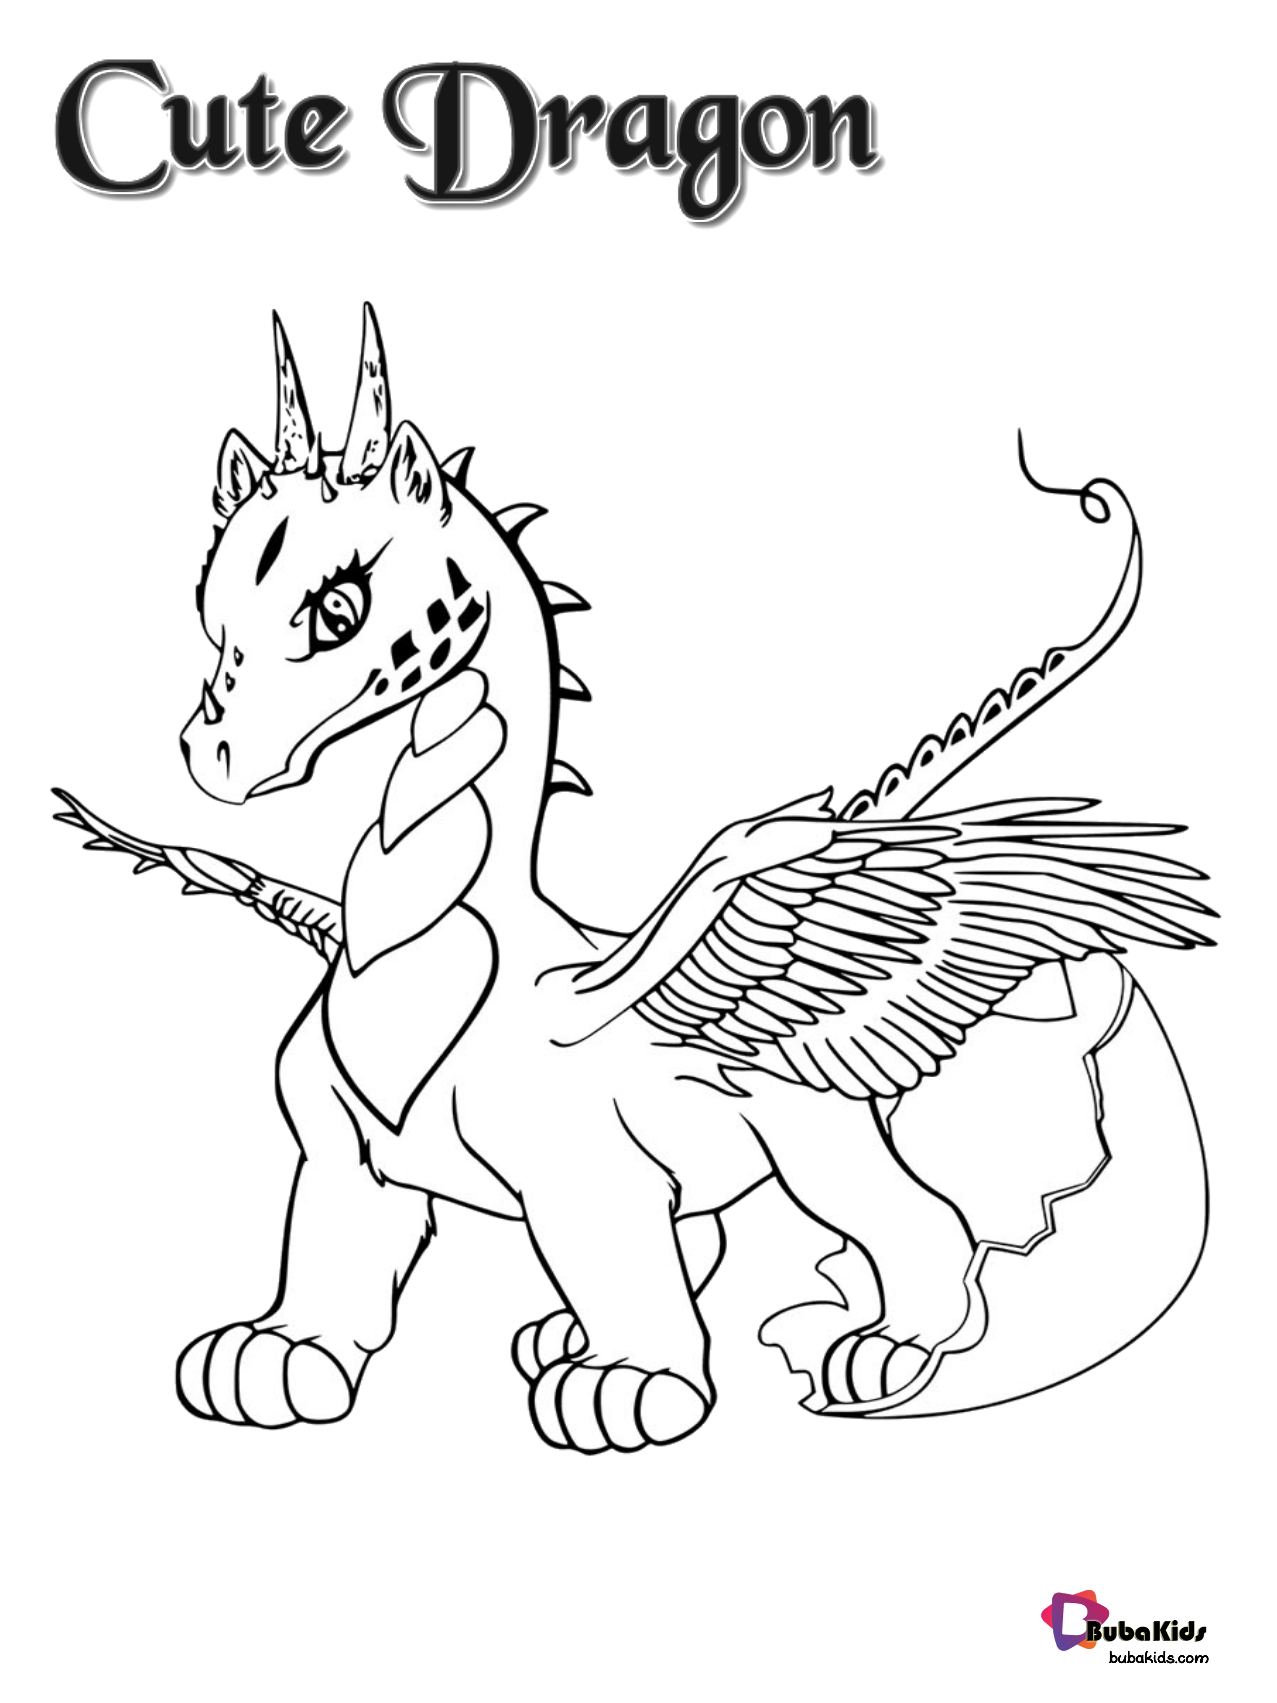 Dragon Coloring Pages How To Train Your Cute Clash Royale Collection Of Cartoon Coloring Pages For In 2020 Dragon Coloring Page Cartoon Coloring Pages Coloring Pages